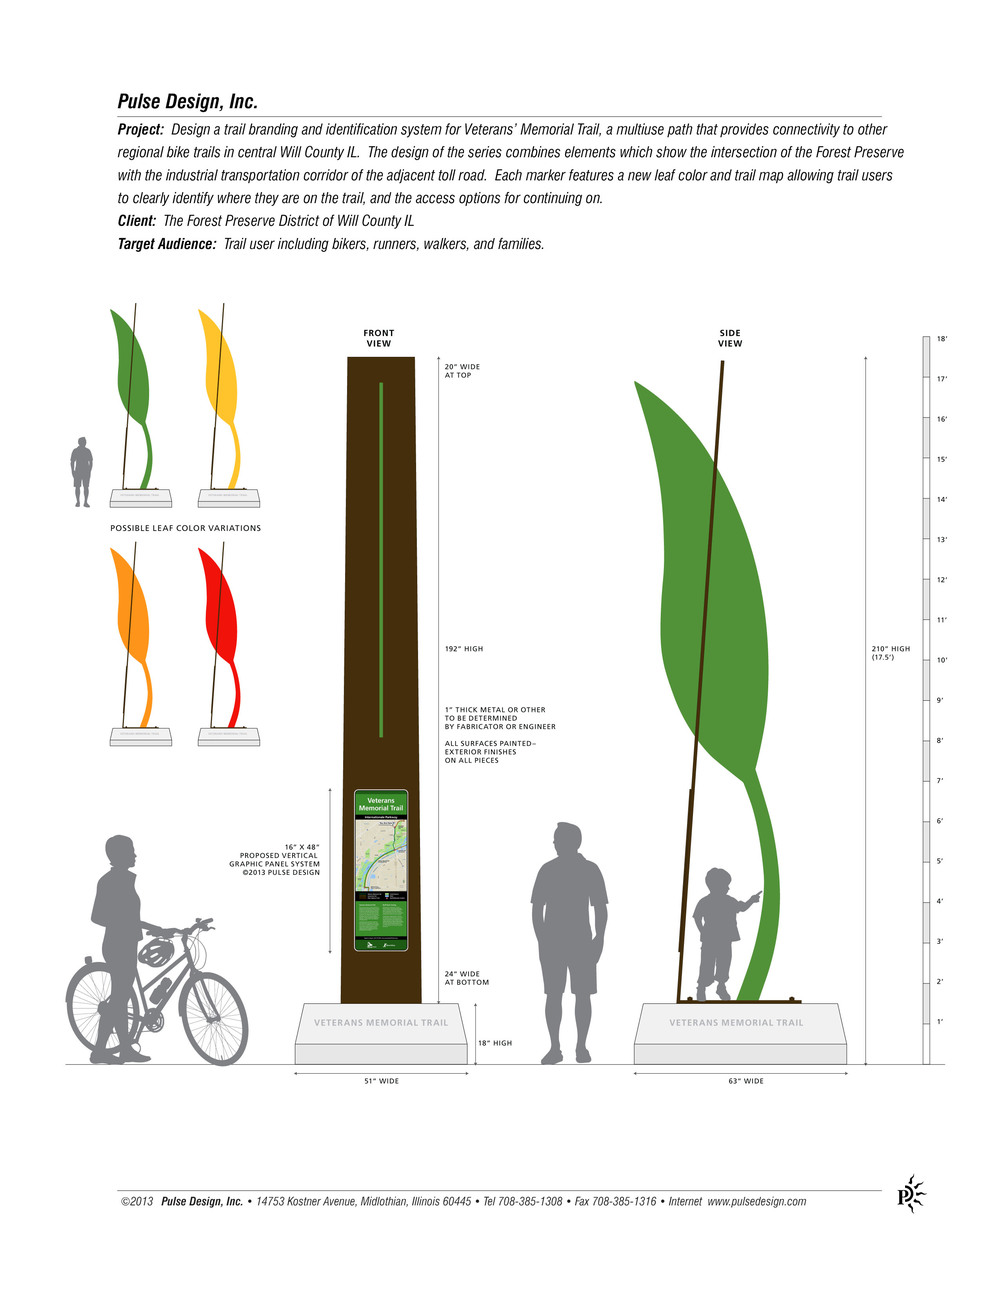 Veterans-Memorial-Trail-Sign-Plans-Pulse-Design-Inc.jpg